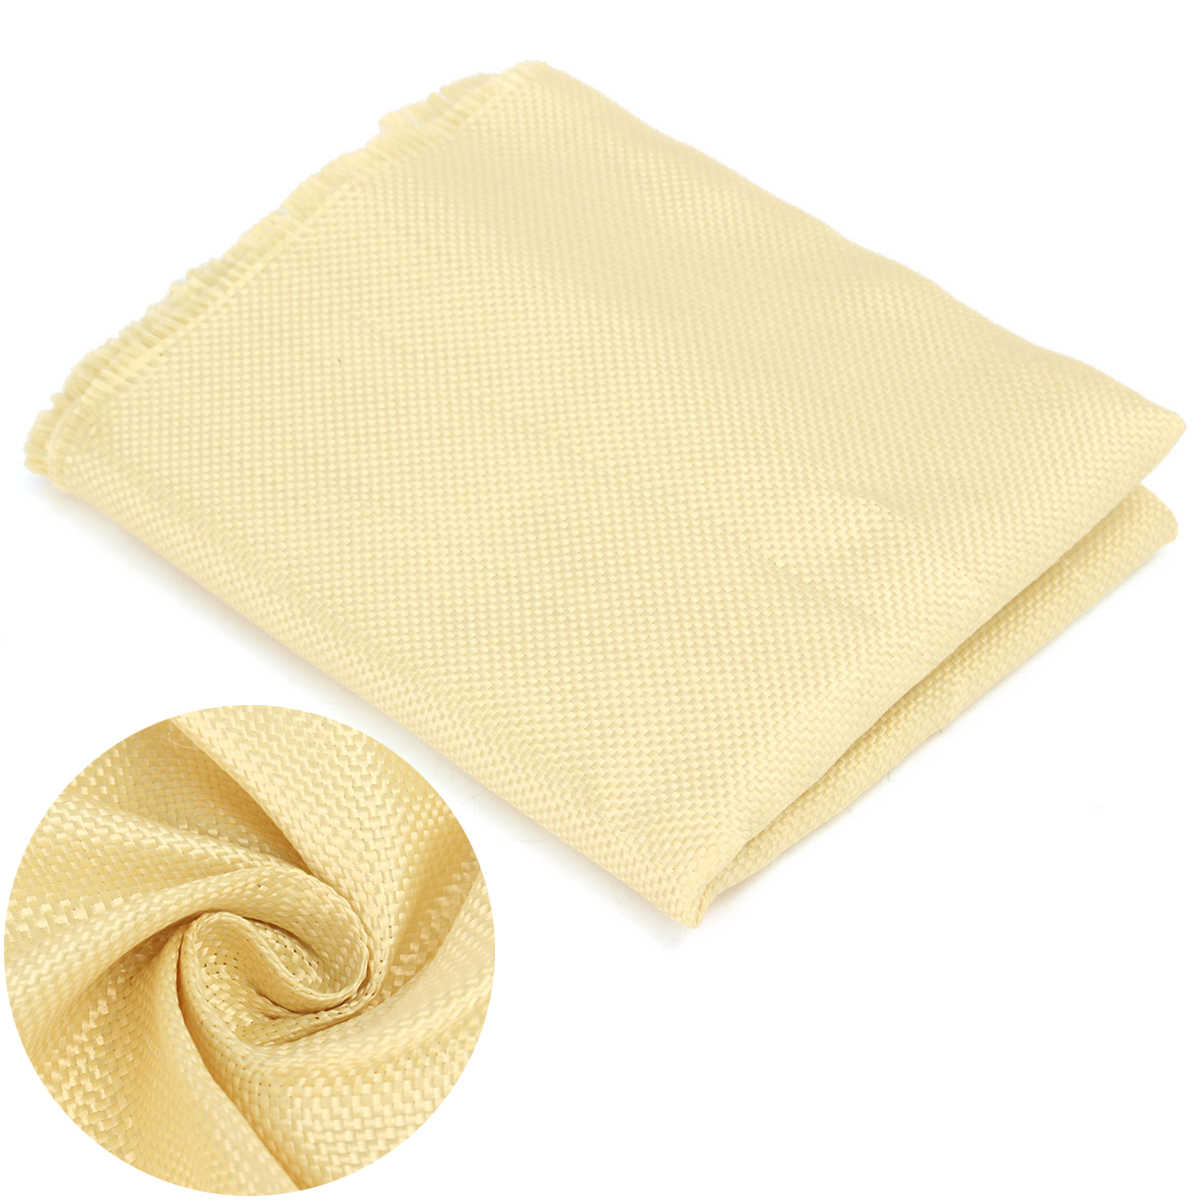 New 200gsm Woven Kevlar Fabric1100 Dtex Durable Plain Color Yellow Aramid Fiber Cloth Mayitr DIY Sewing Crafts 100cm*30cm